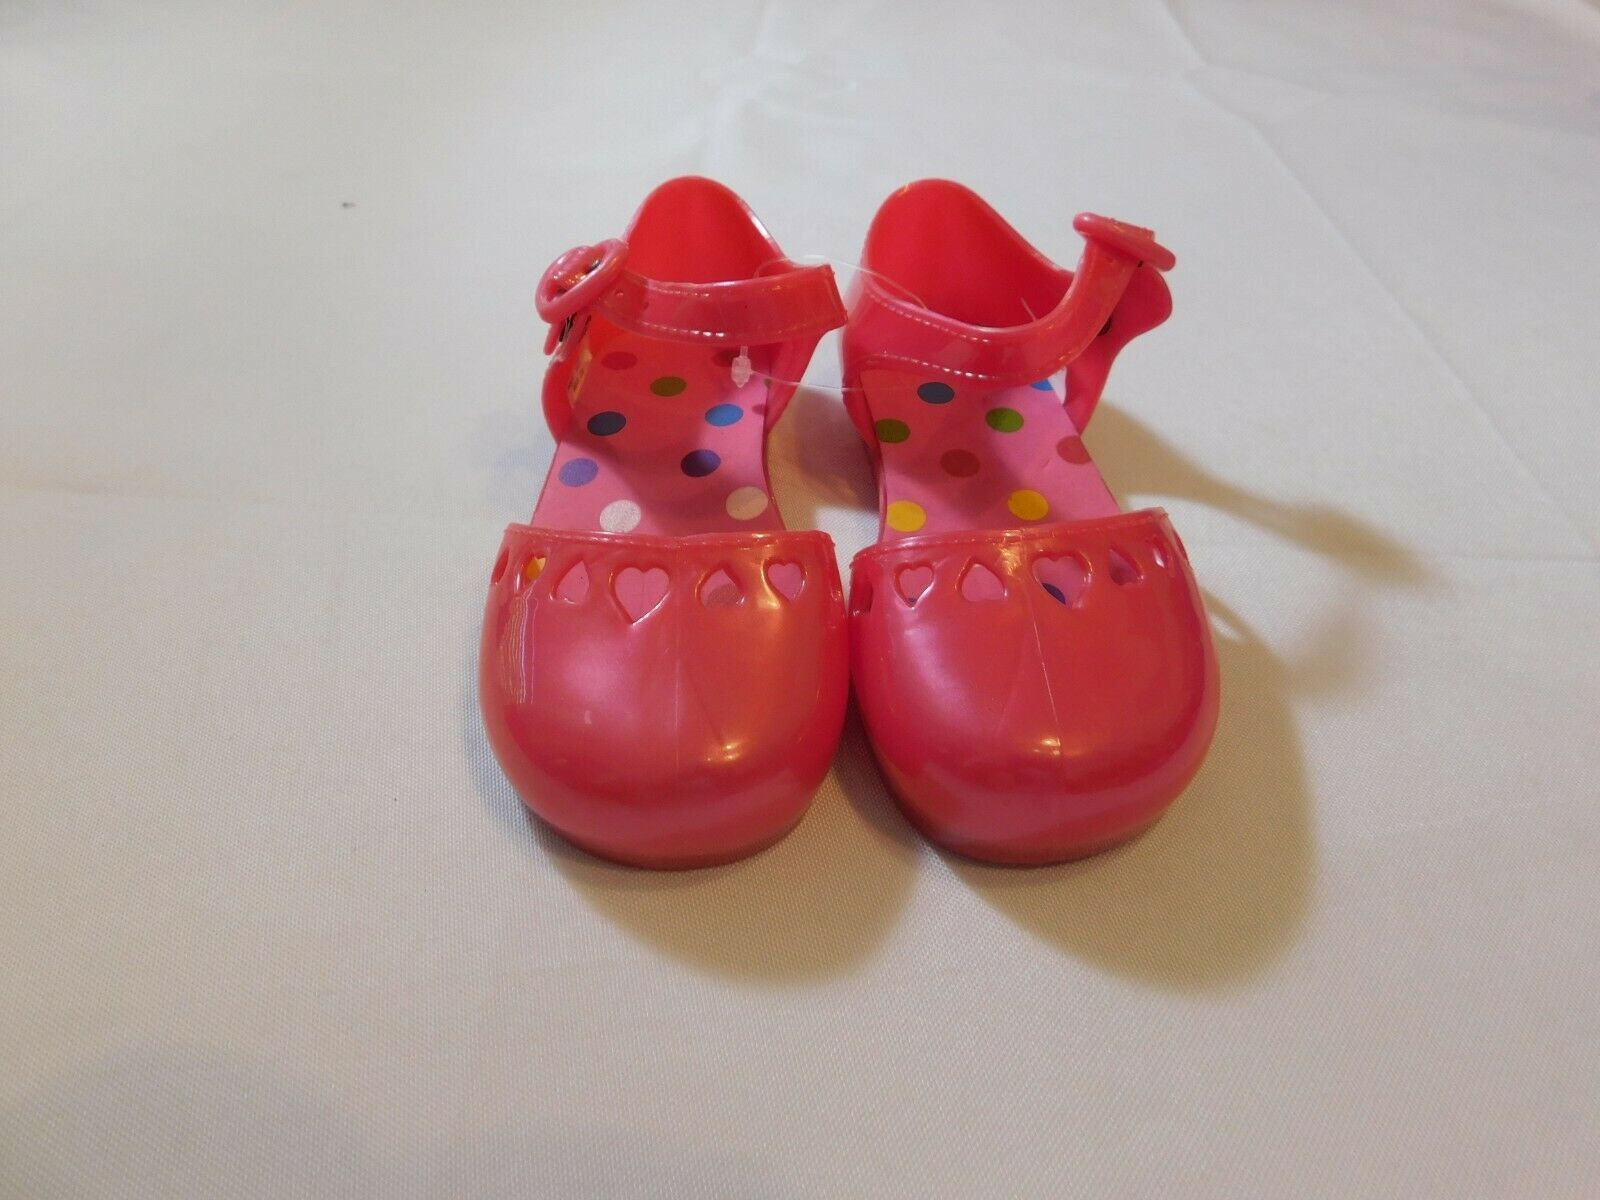 The Children's Place Girl's Youth Sandals Pink Size Variations Hearts NWOT - $13.49